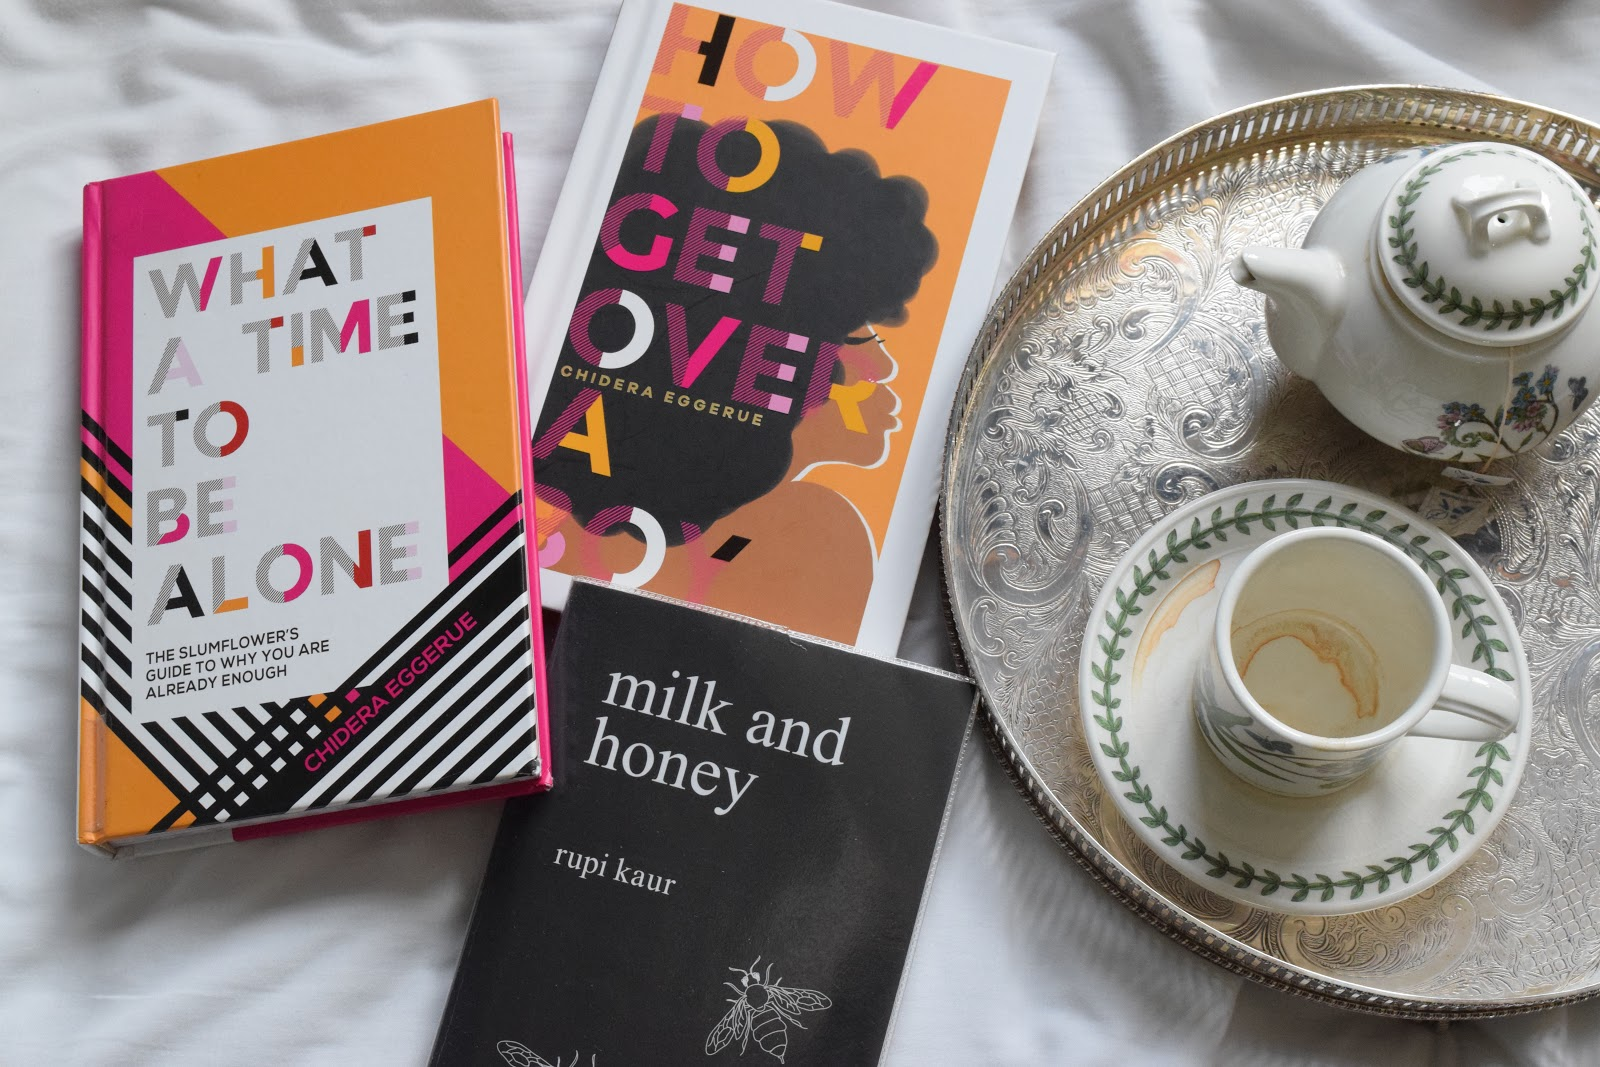 What a time to be alone by Chidera Eggerue, milk and honey by Rupi Kaur and a teapot with a tea cup on a silver tray